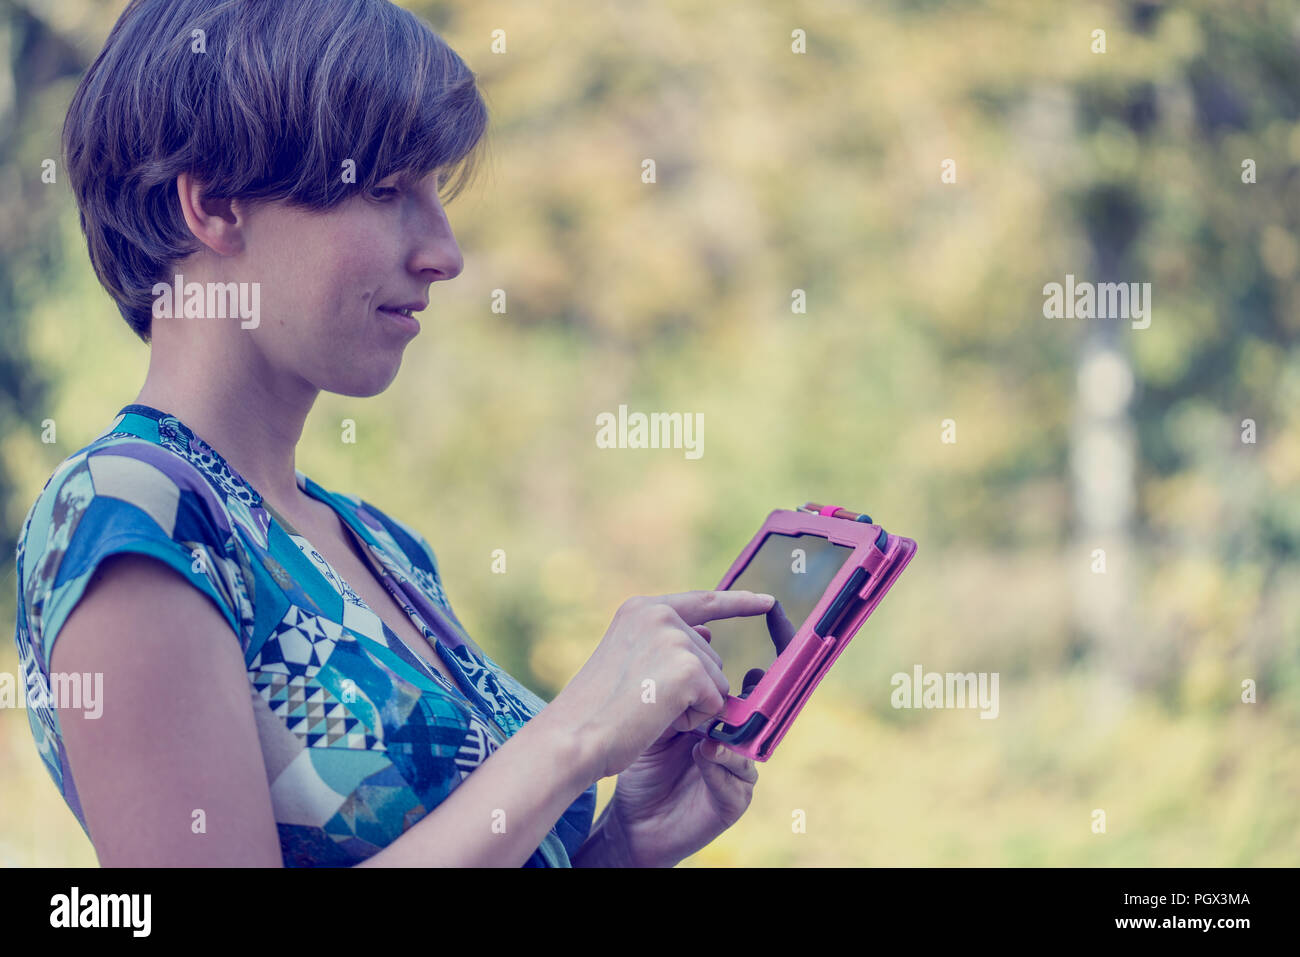 Attractive young woman standing in profile using a pink tablet outdoors navigating the touch screen with her finger against greenery with copyspace, v Stock Photo